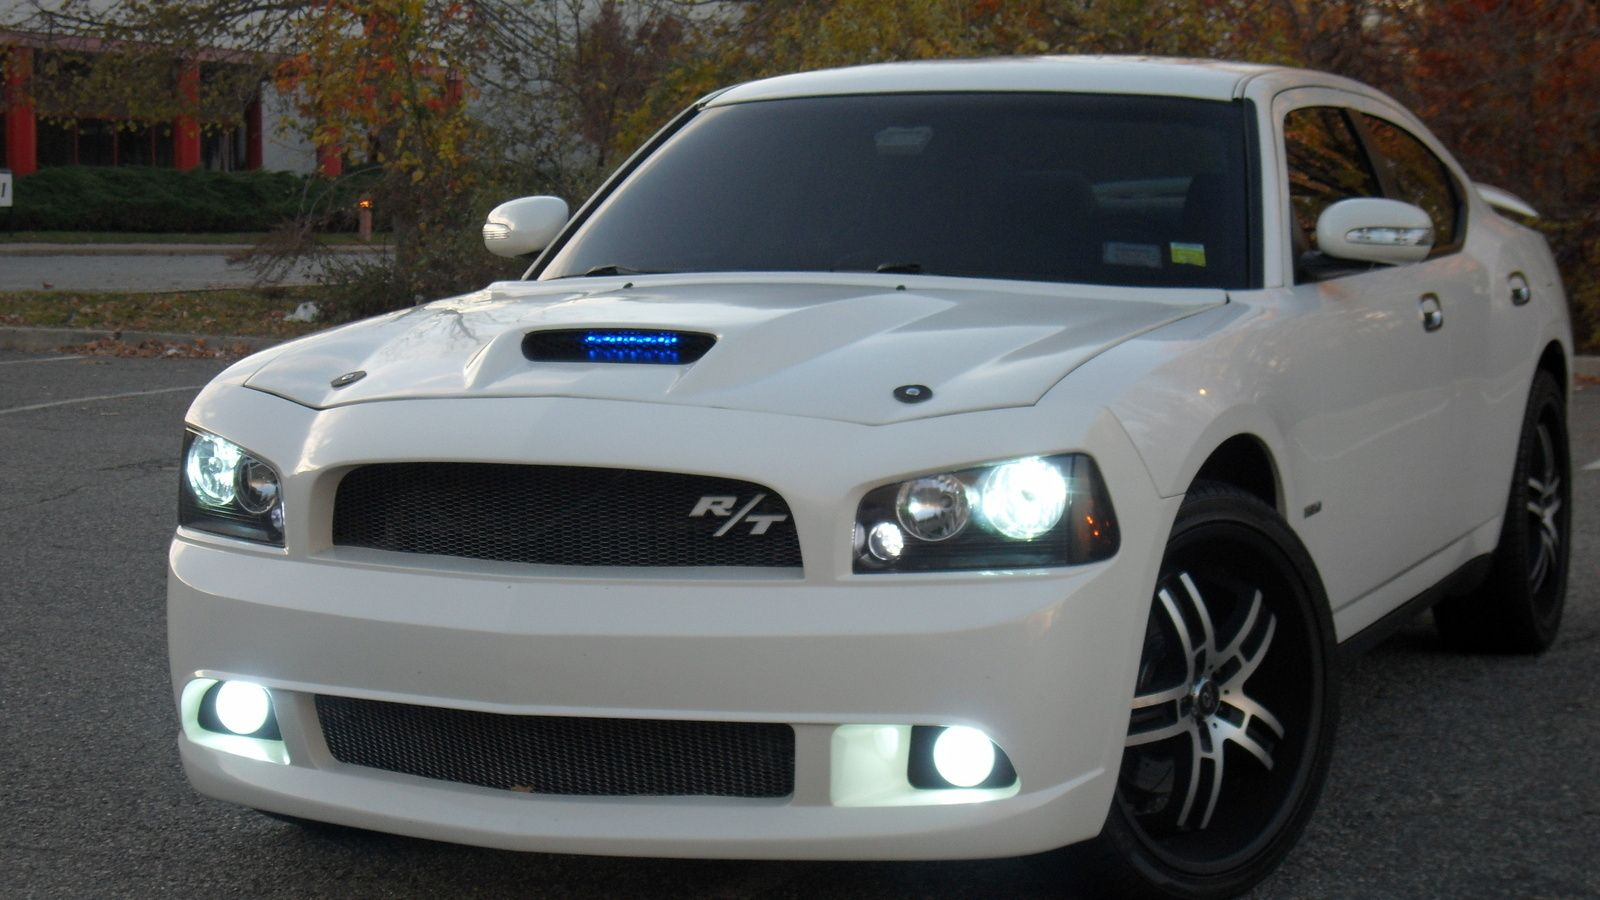 2007 Dodge Charger R T Awd Vehicles Chargers Challengers